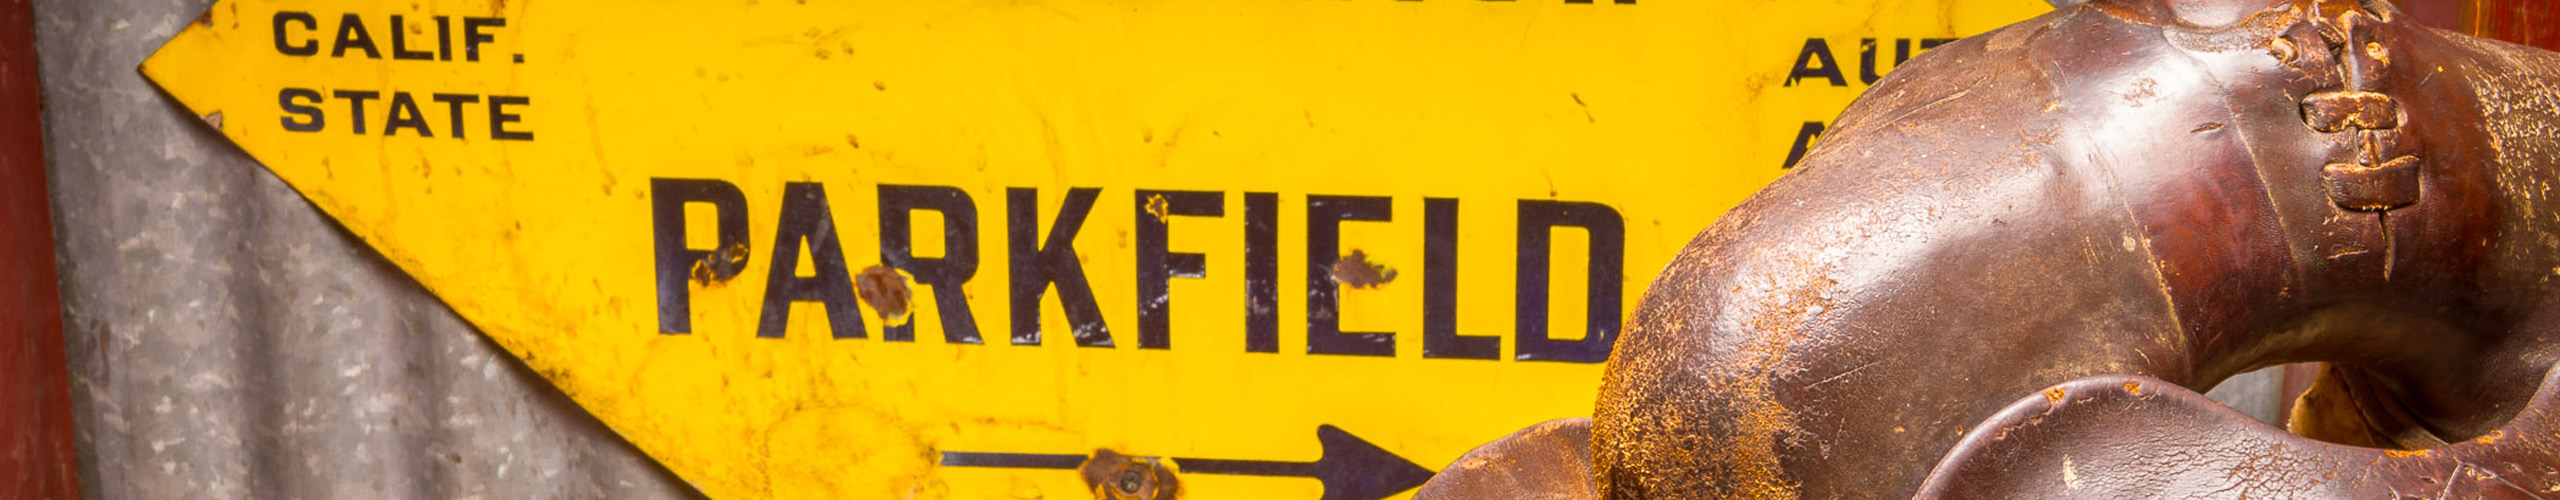 Parkfield_Cafe_Saddle_sign